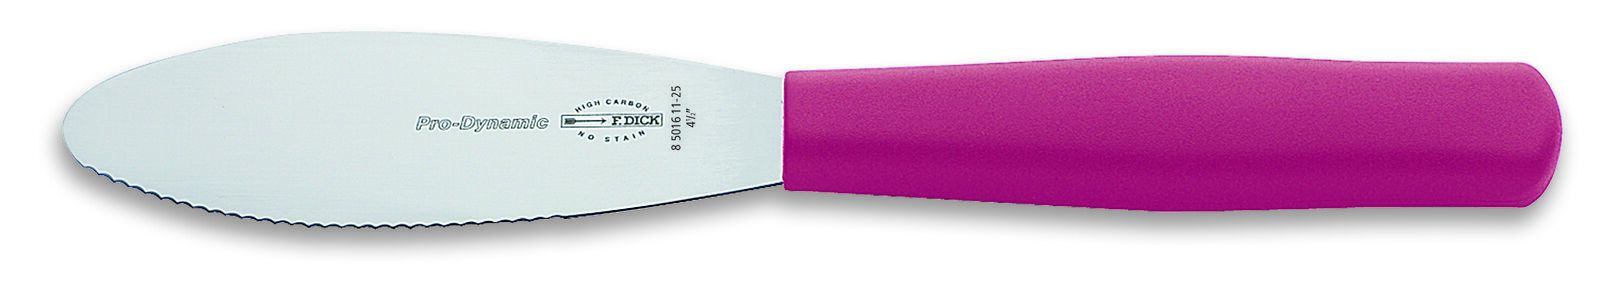 "F. Dick (8501611-25) 4"" Sandwich Knife, Serrated Edge, Pink Handle - Pro Dynamic-cityfoodequipment.com"